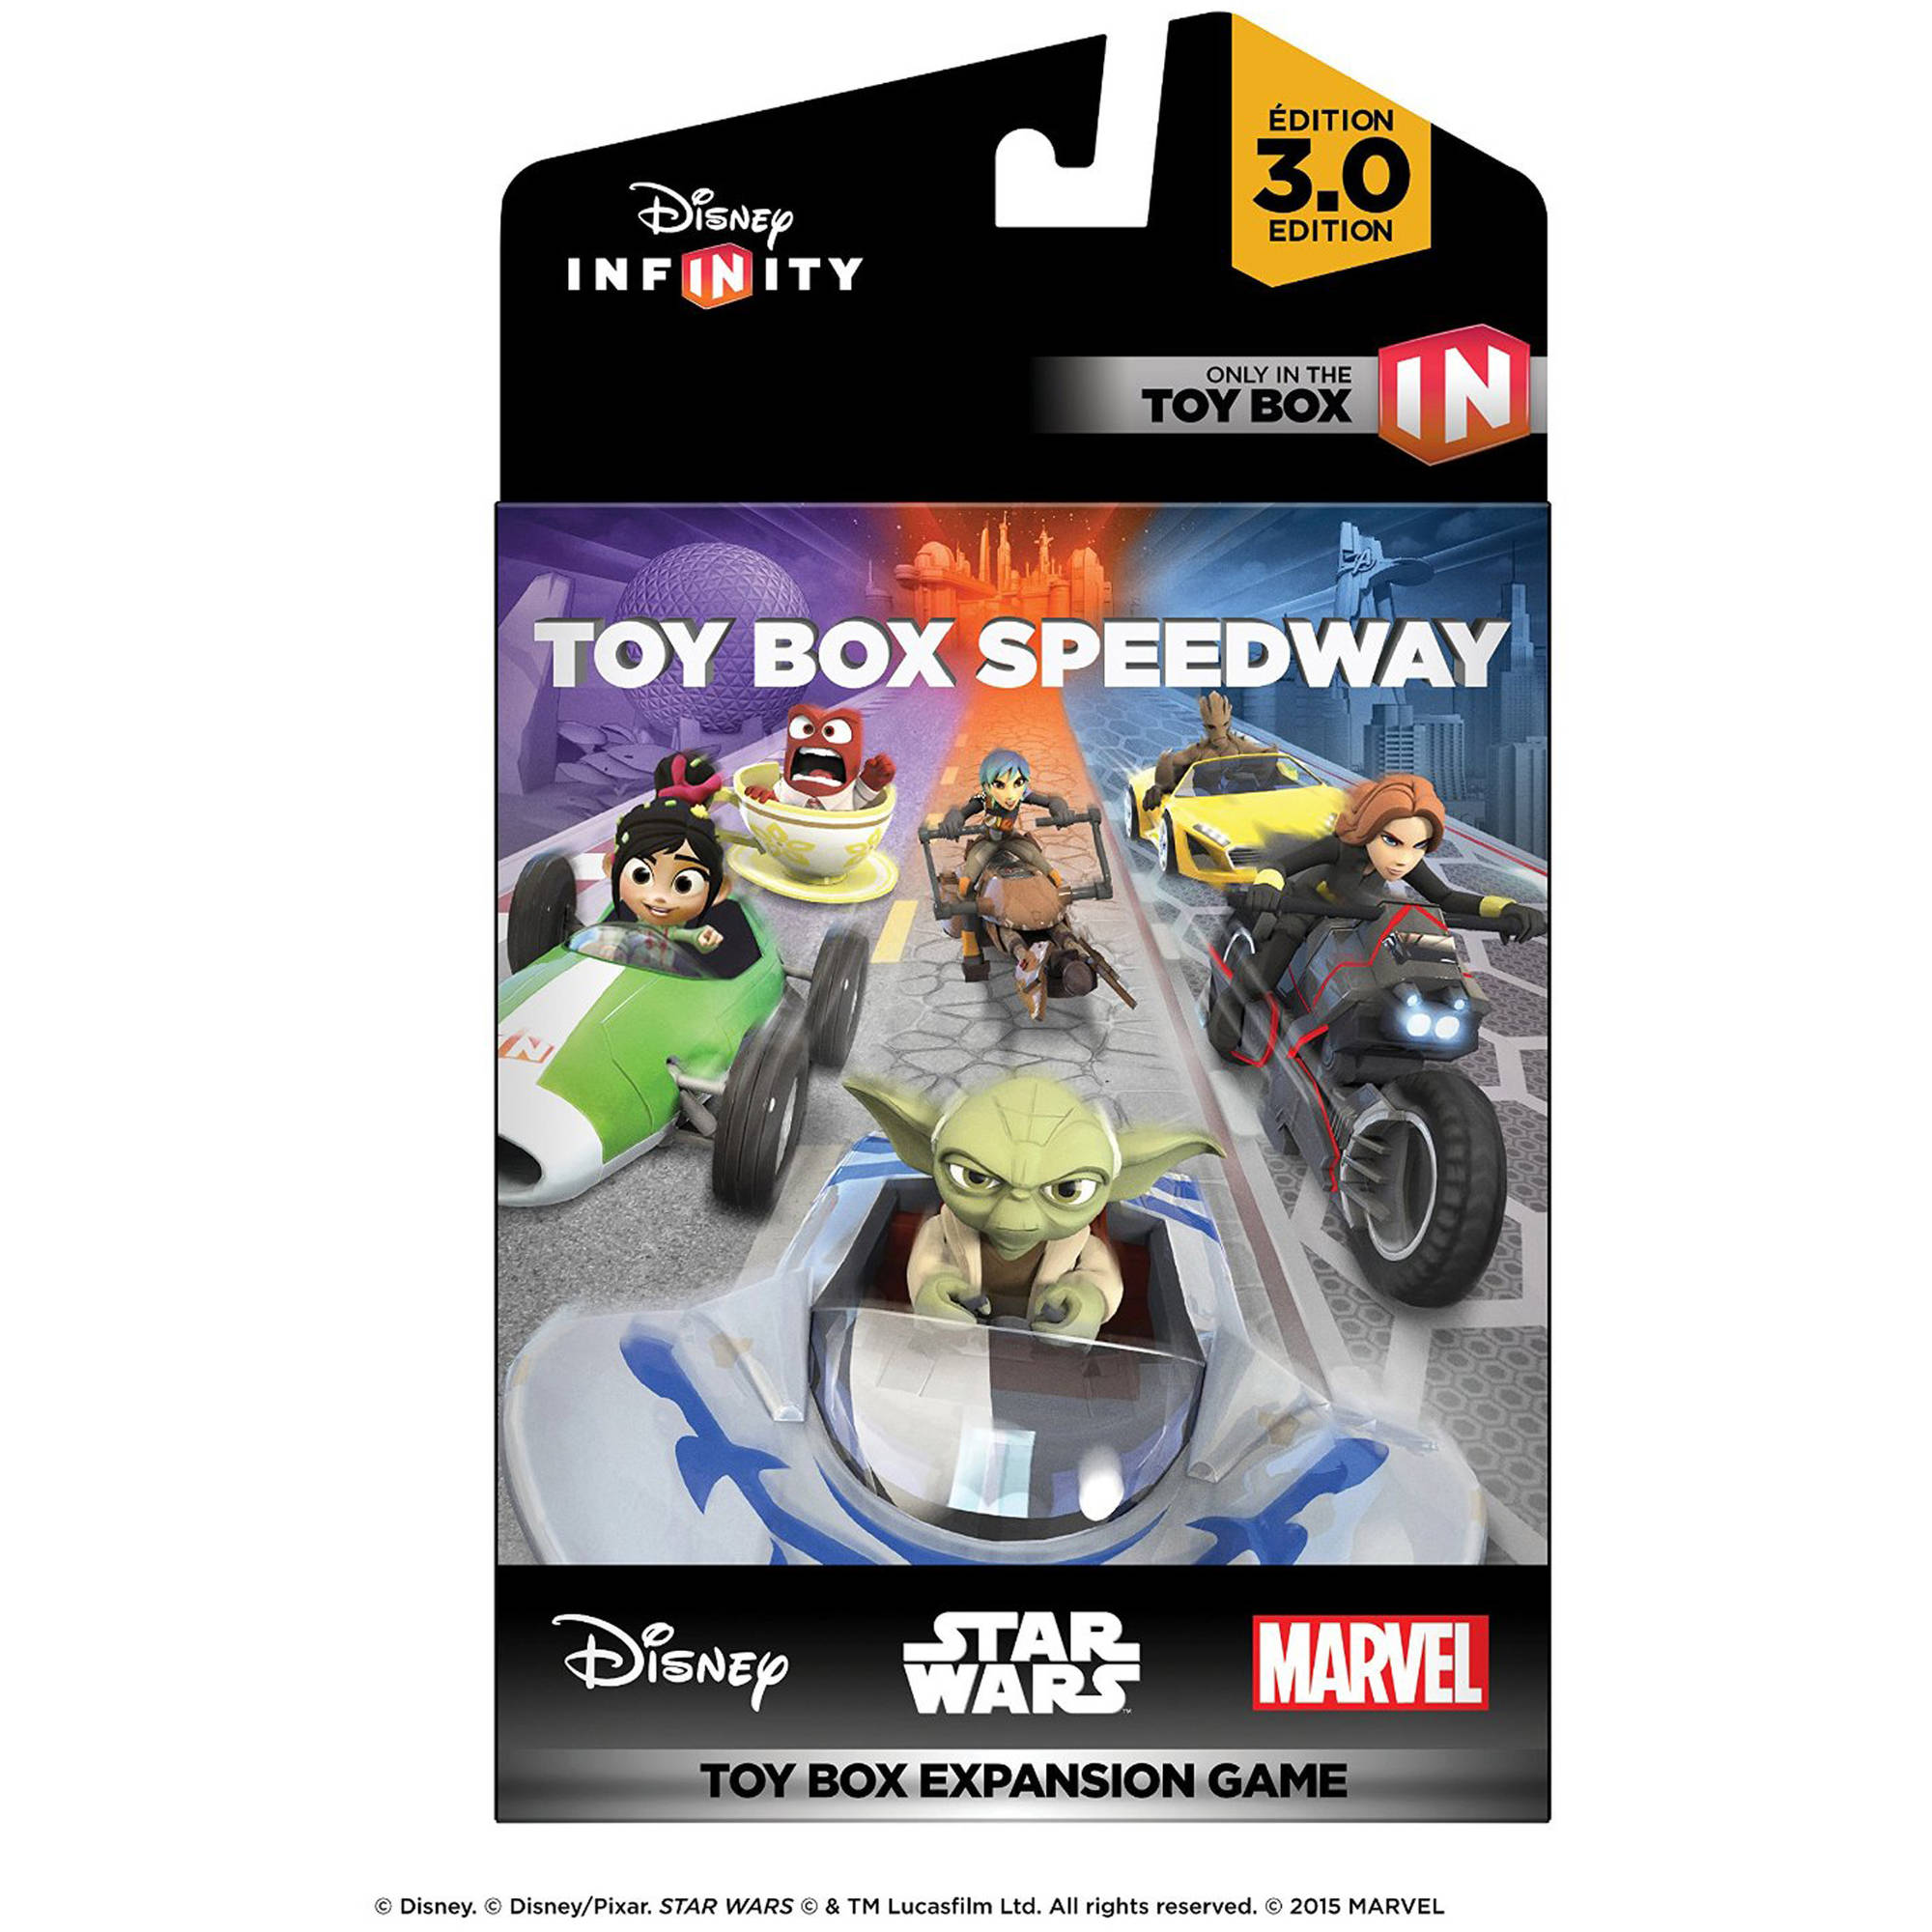 Disney Infinity 3.0 Edition Toy Box Speedway